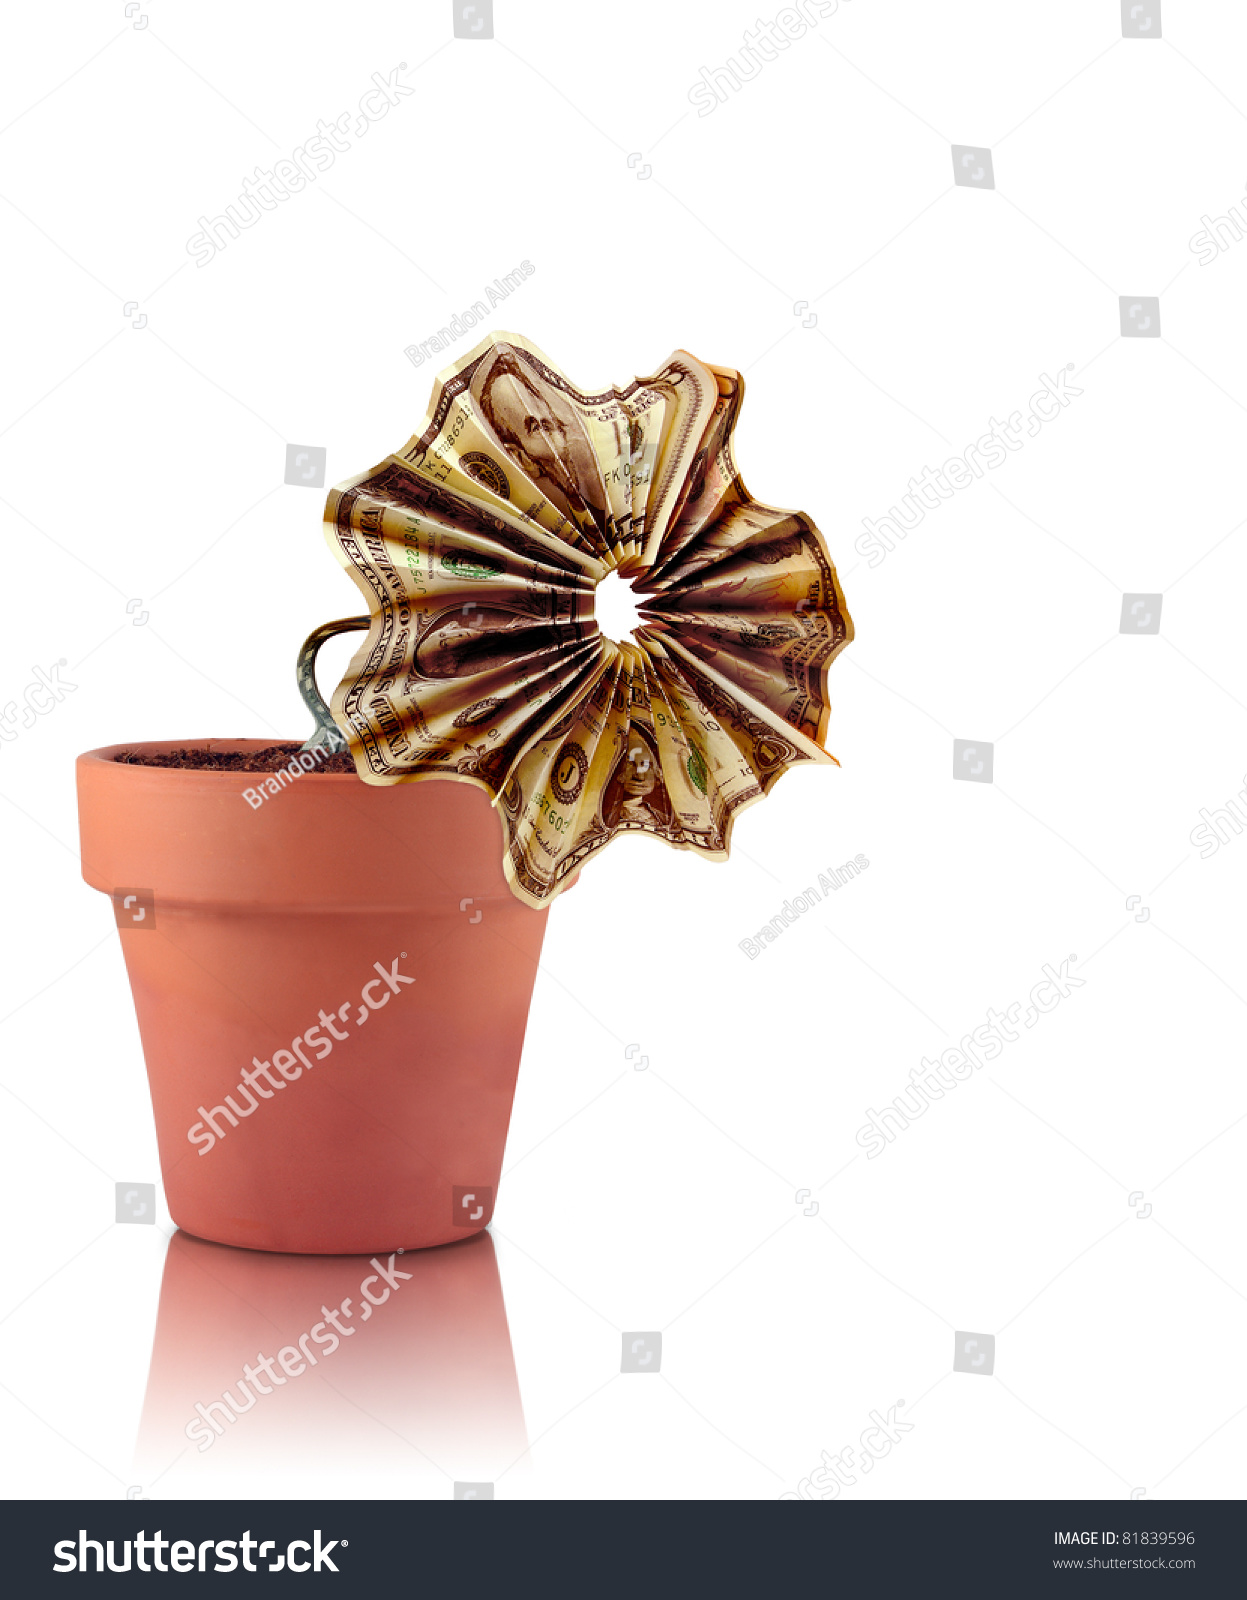 Withered Money Flower Stock Photo (Edit Now) 81839596 - Shutterstock